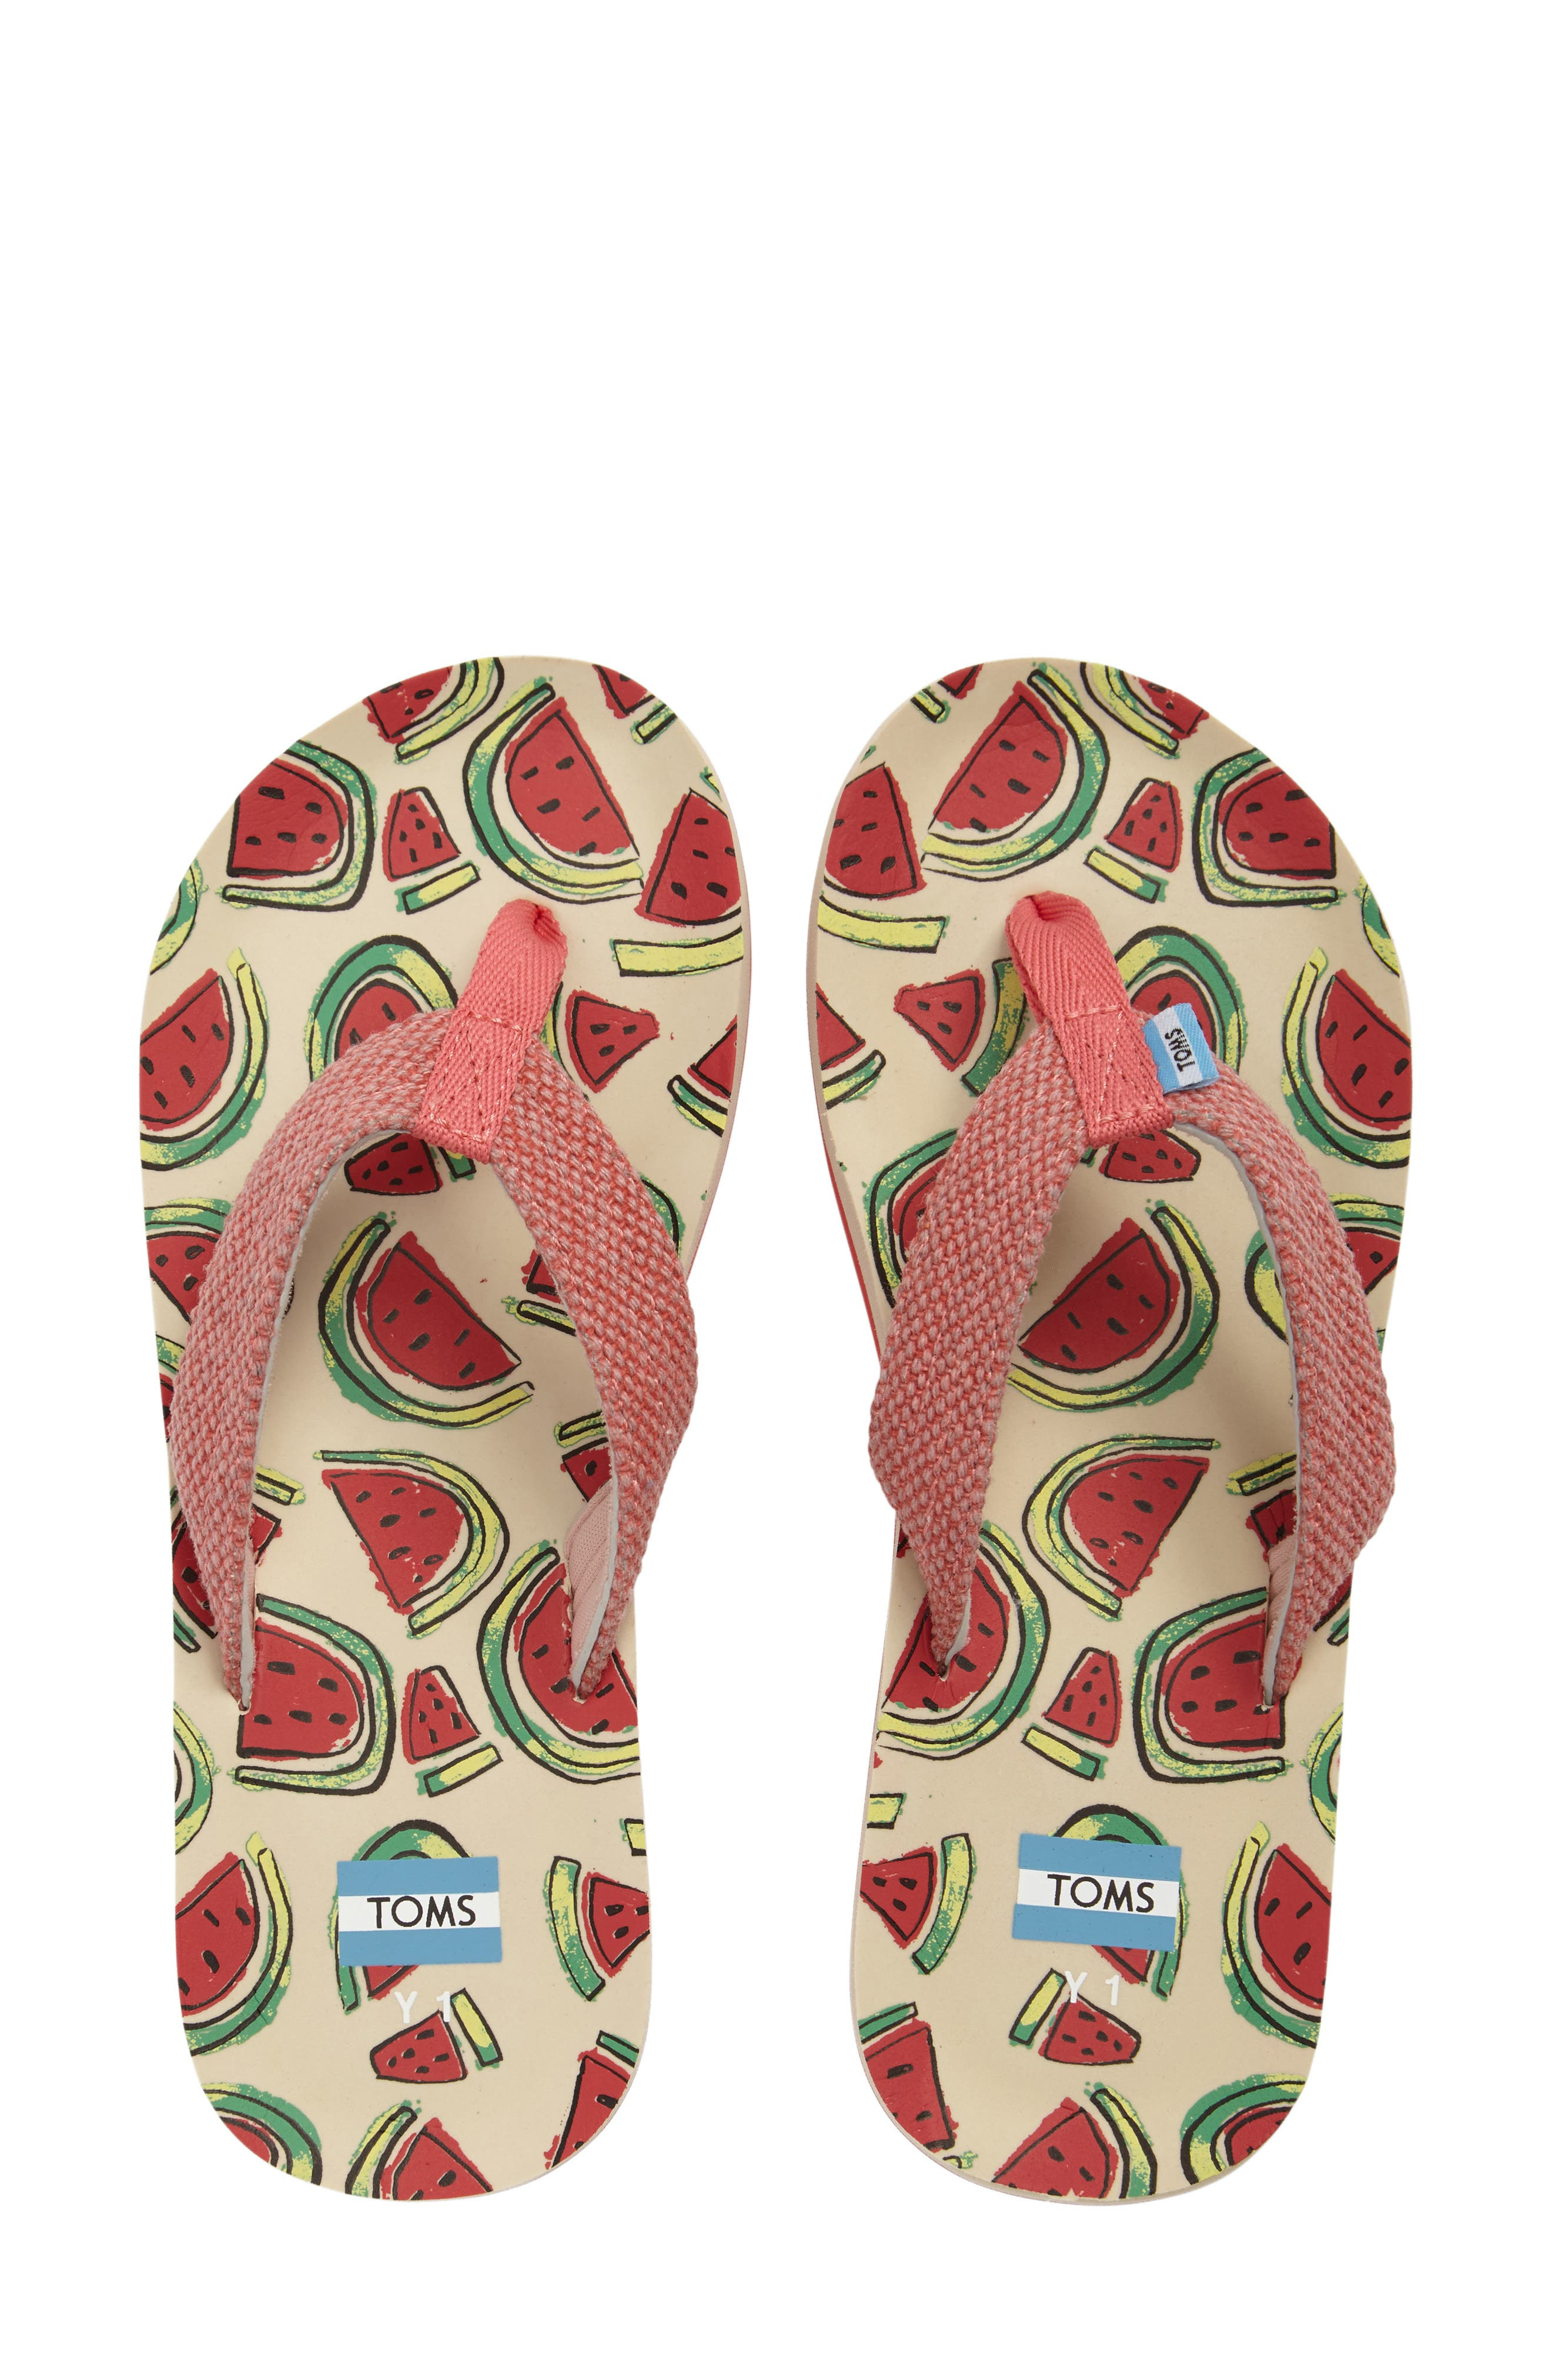 TOMS Verano Print Flip Flop (Toddler, Little Kid & Big Kid)